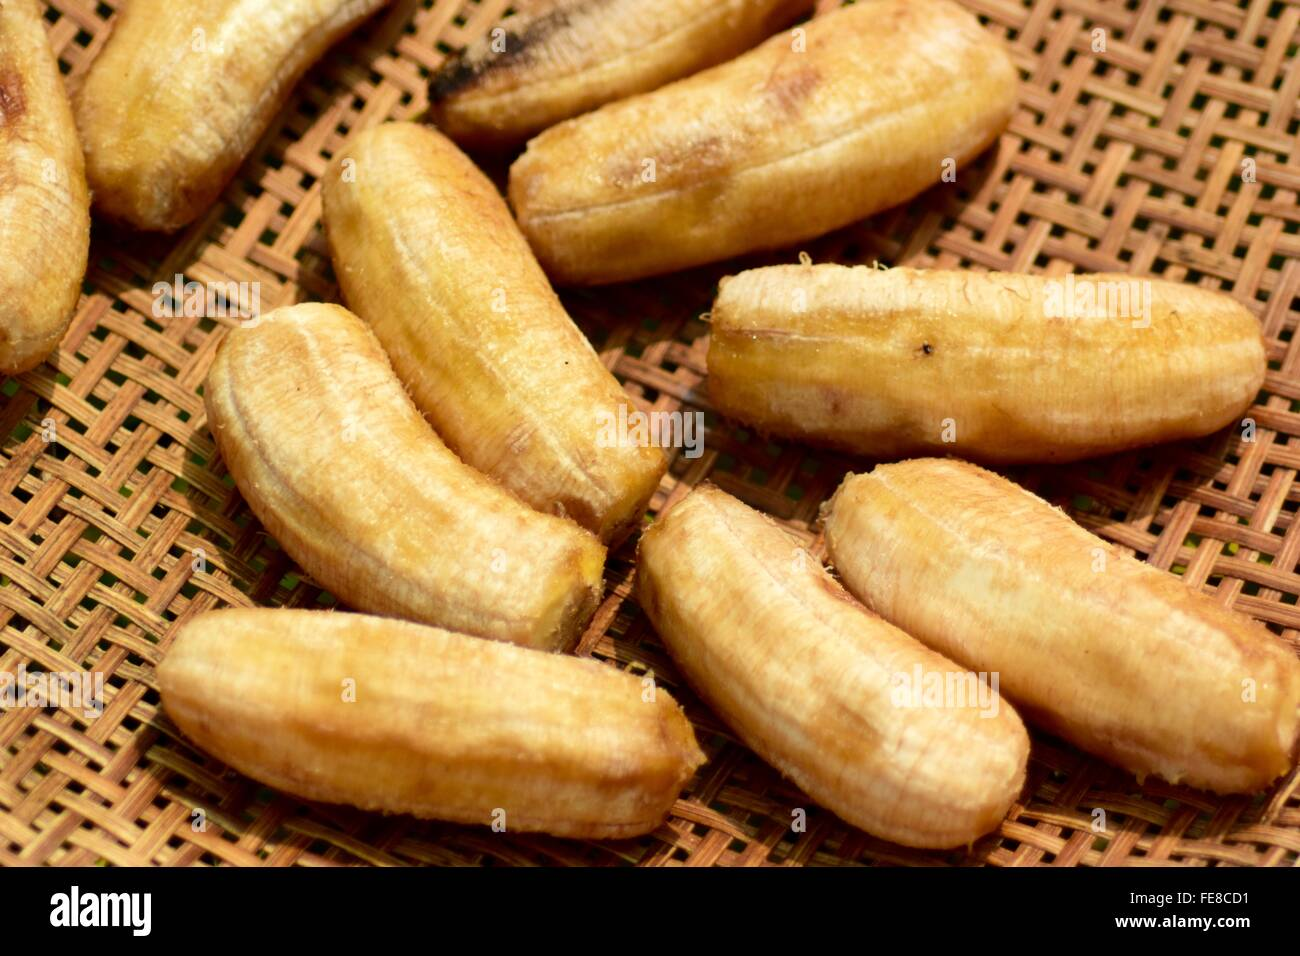 Close-Up Of Bananas Drying On Cane Platters - Stock Image